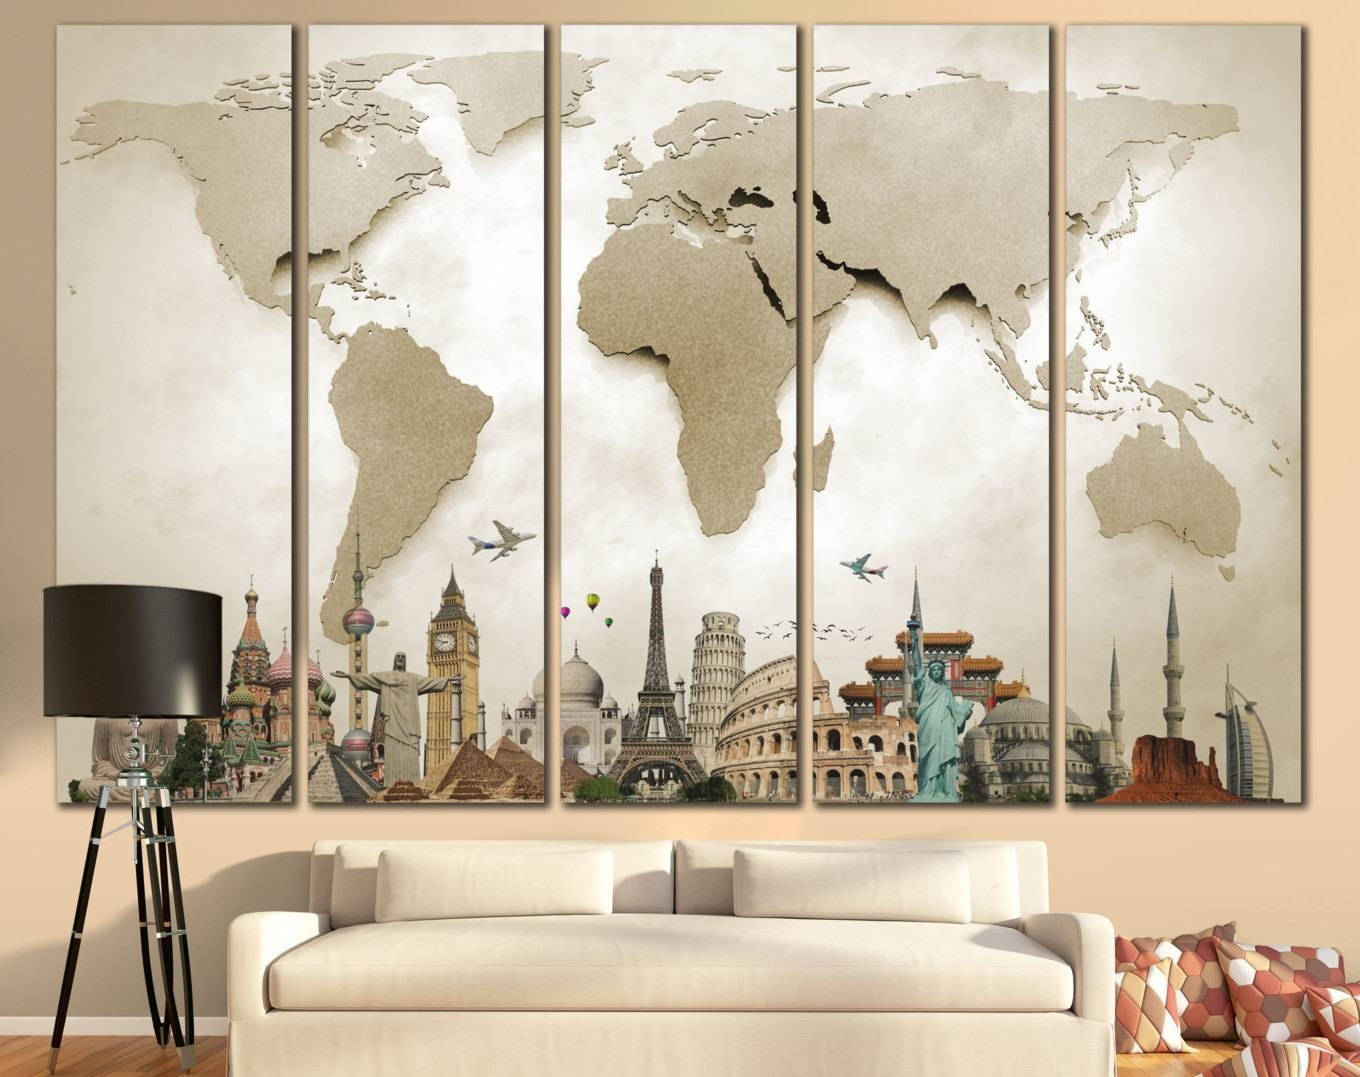 Fantastic Large Artwork For Wall Brilliant Ideas Large Art For Throughout 2017 World Map Wall Artwork (View 4 of 20)